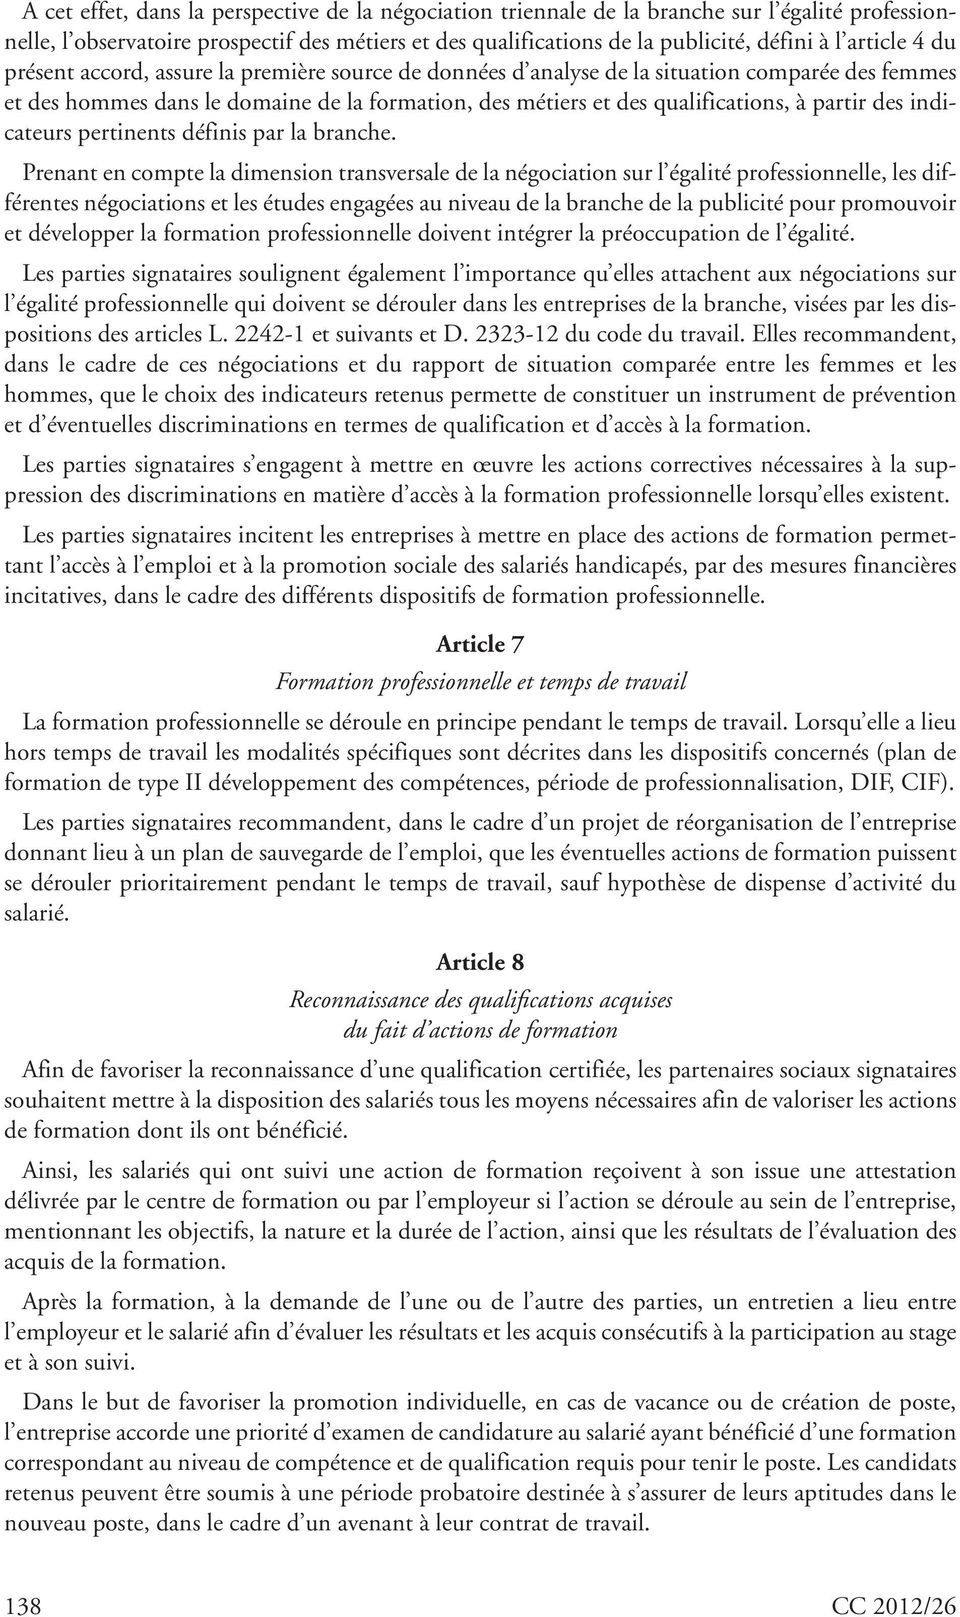 partir des indicateurs pertinents définis par la branche.